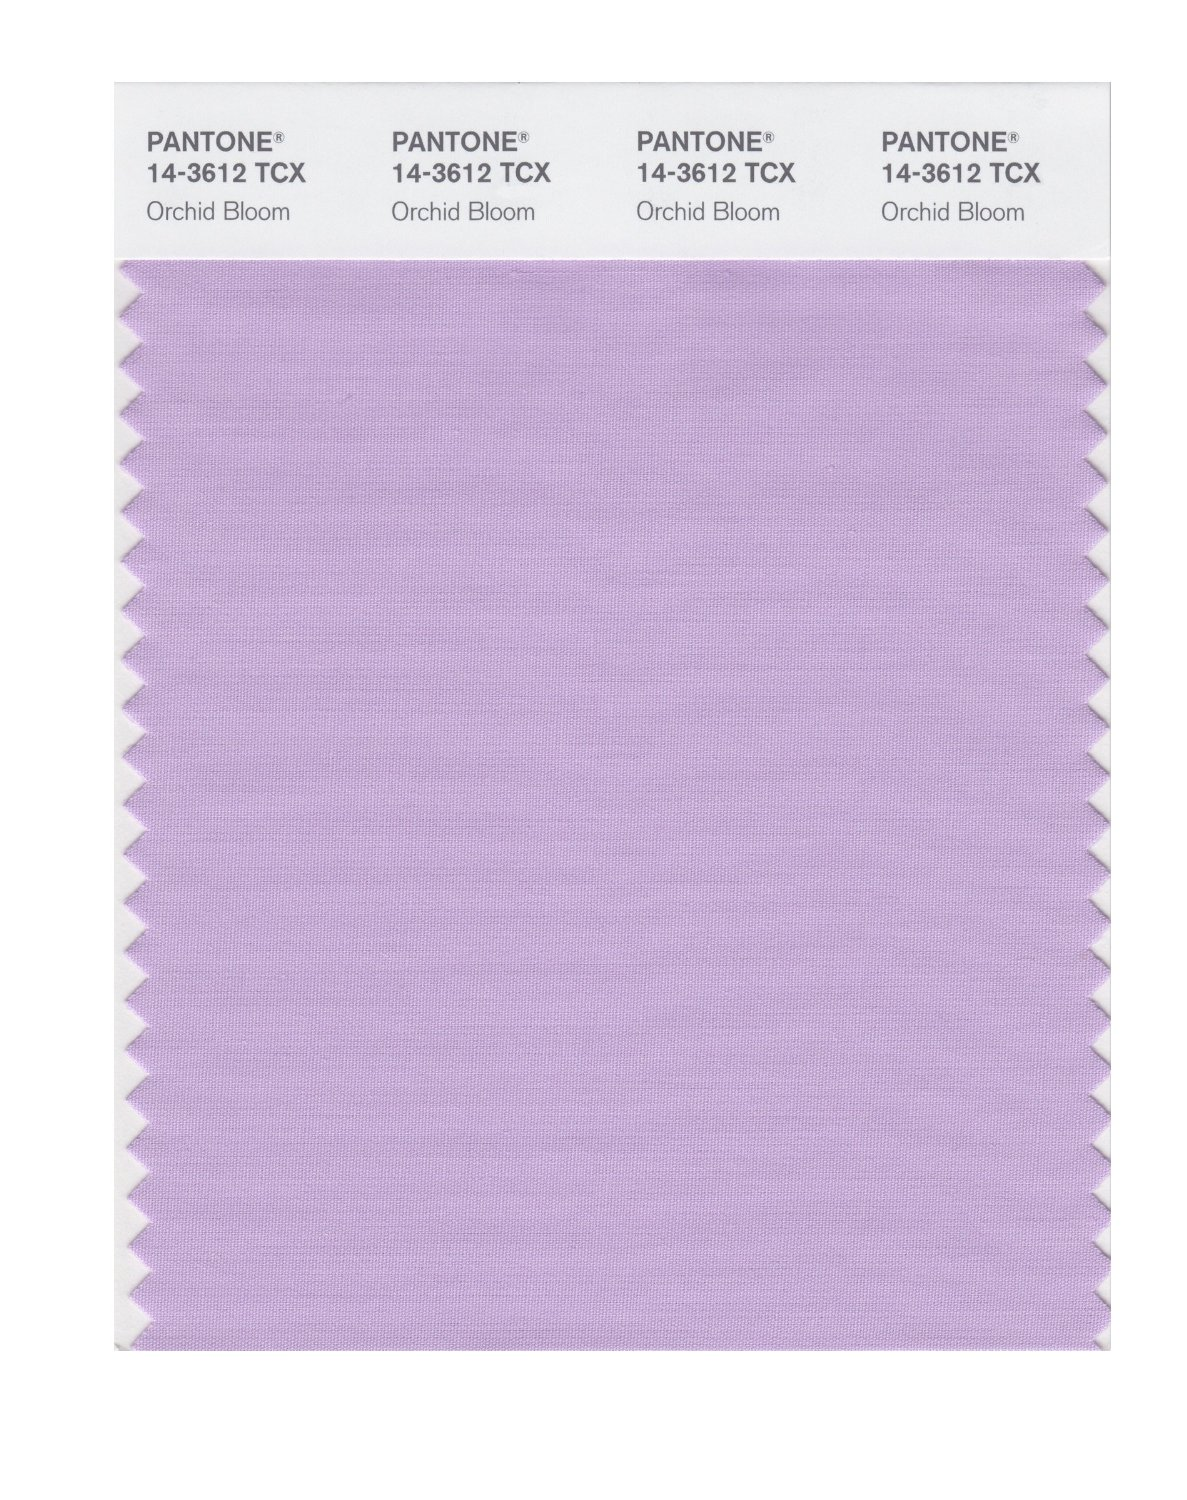 Pantone Smart Swatch 14-3612 Orchid Bloom